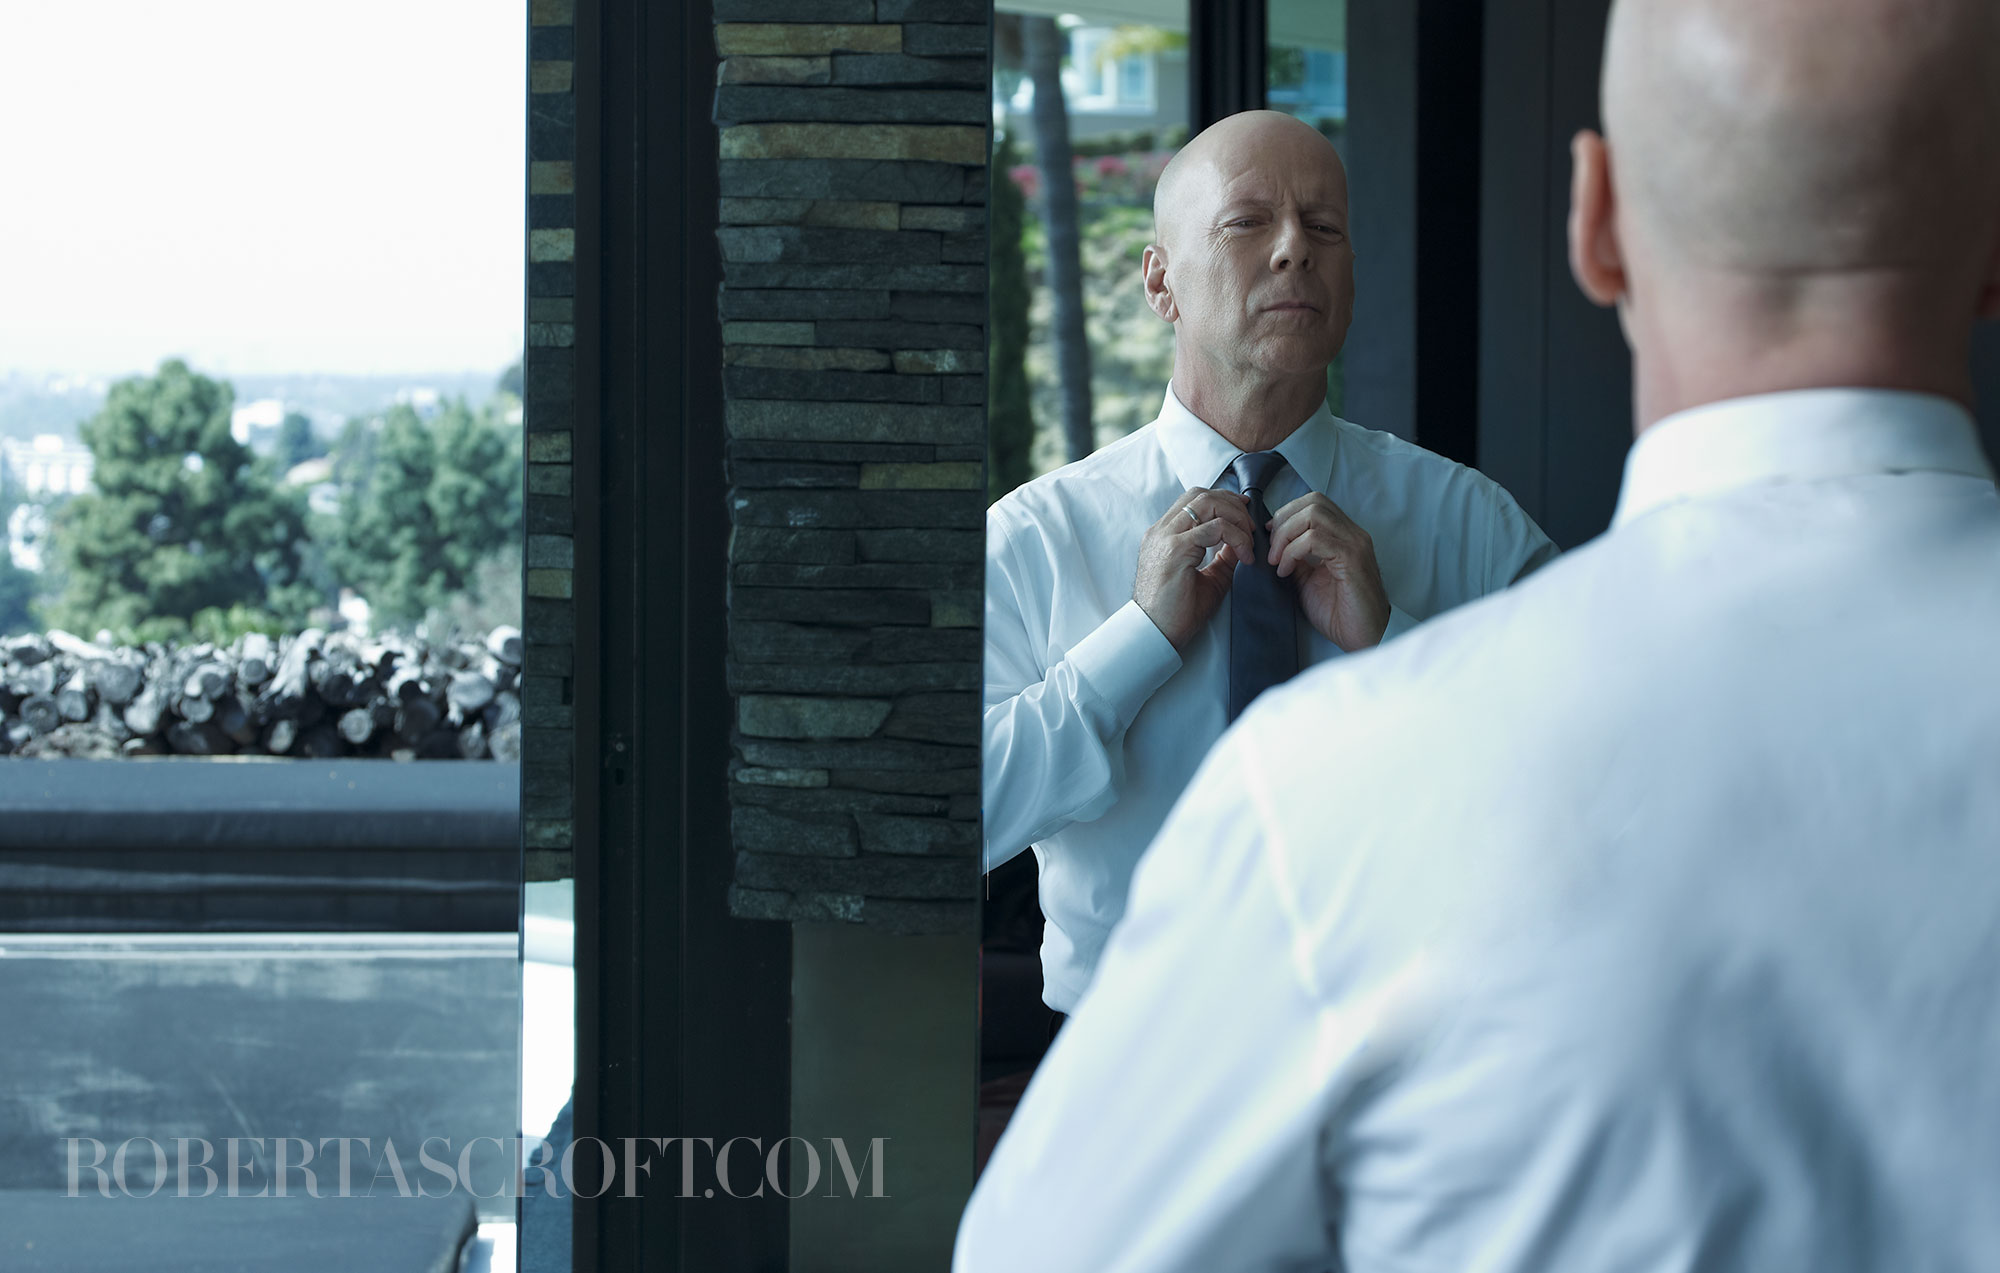 Bruce-Willis-by-Robert-Ascroft-06